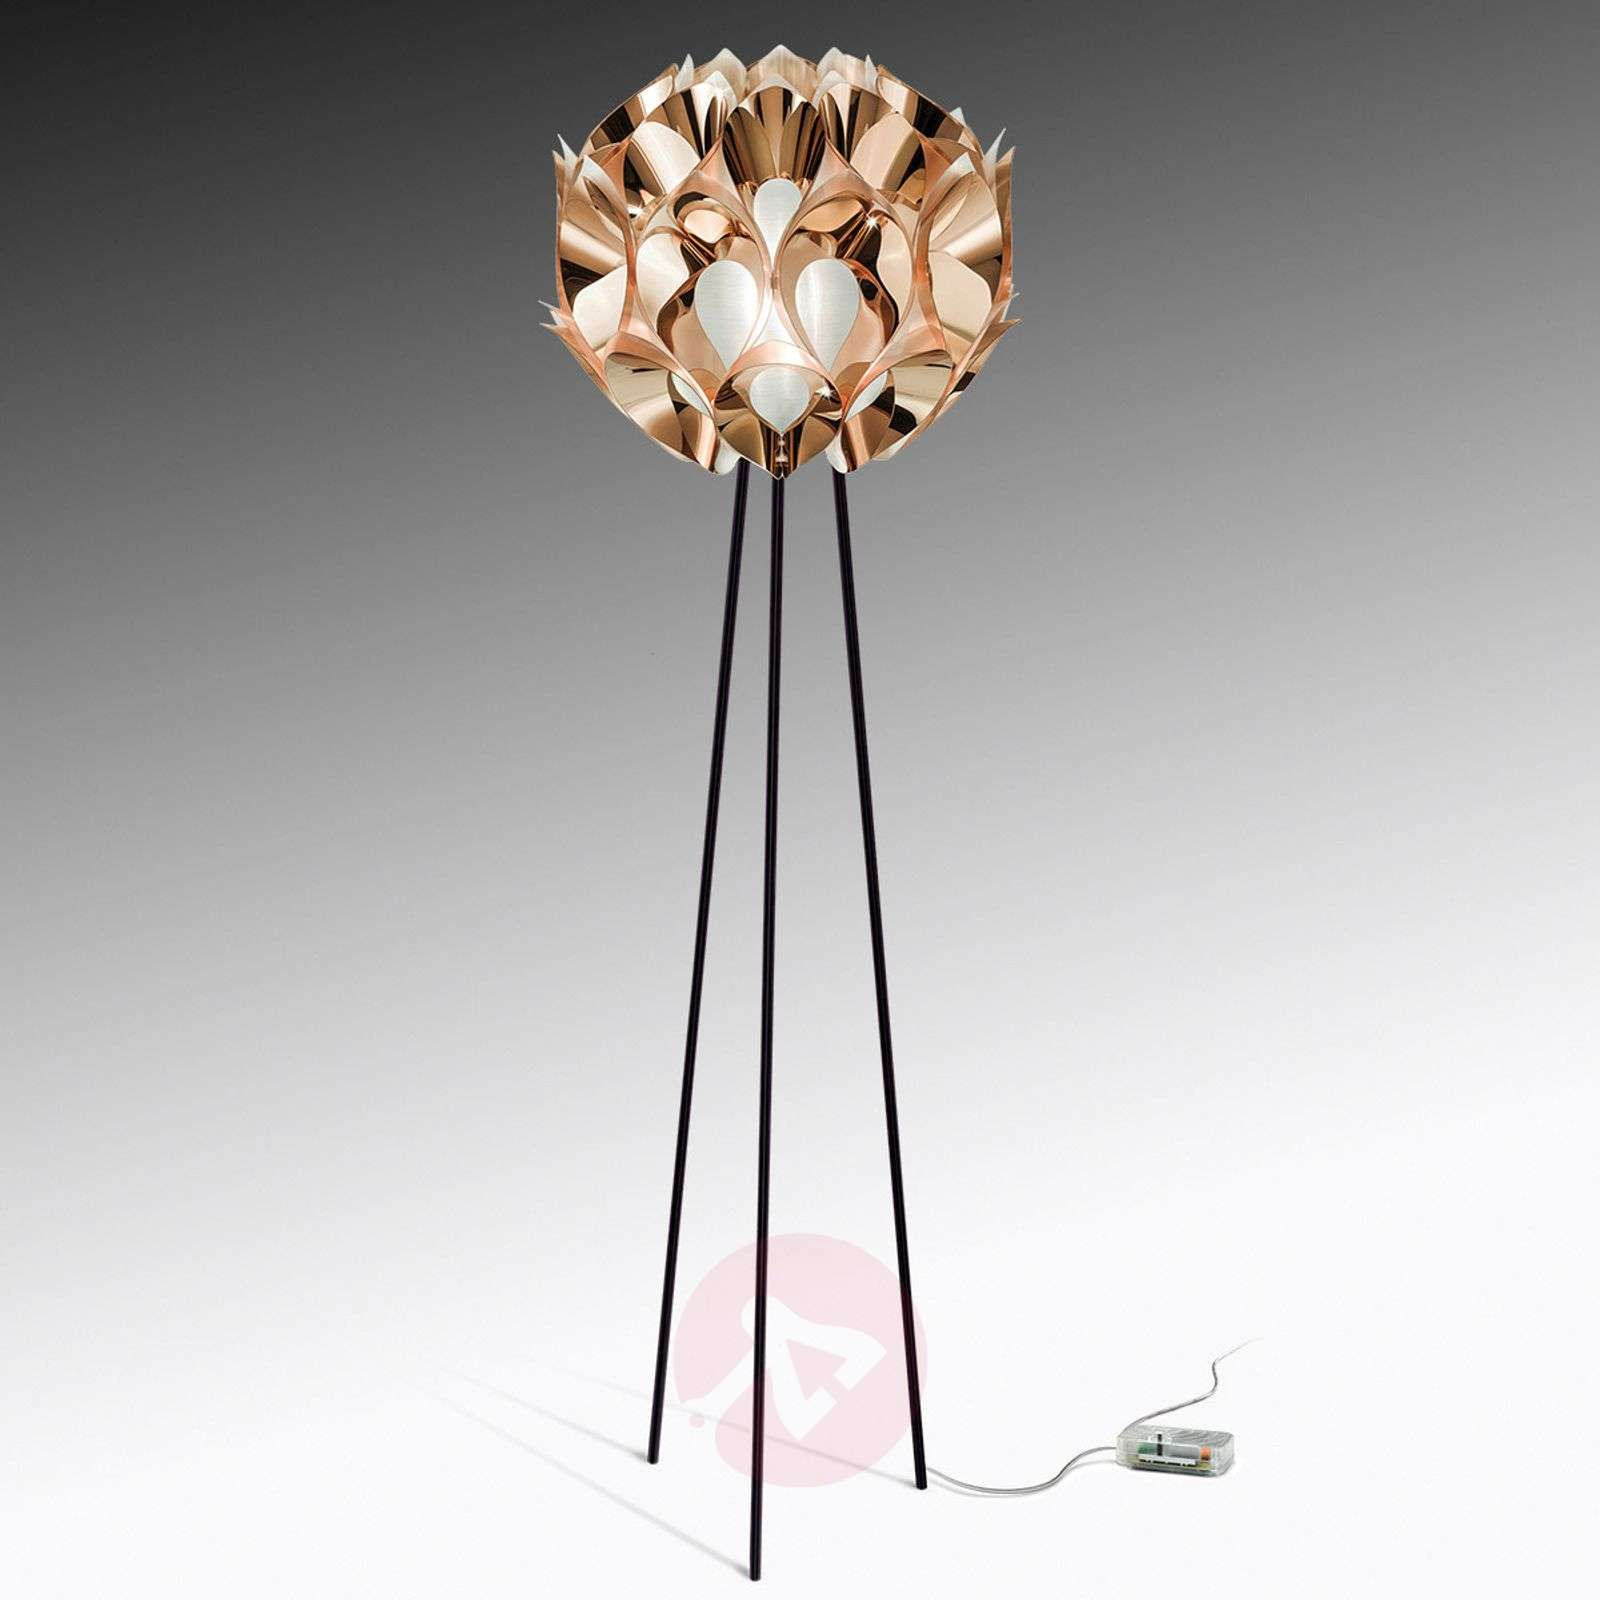 Flora designer floor lamp in copper-8503239-01